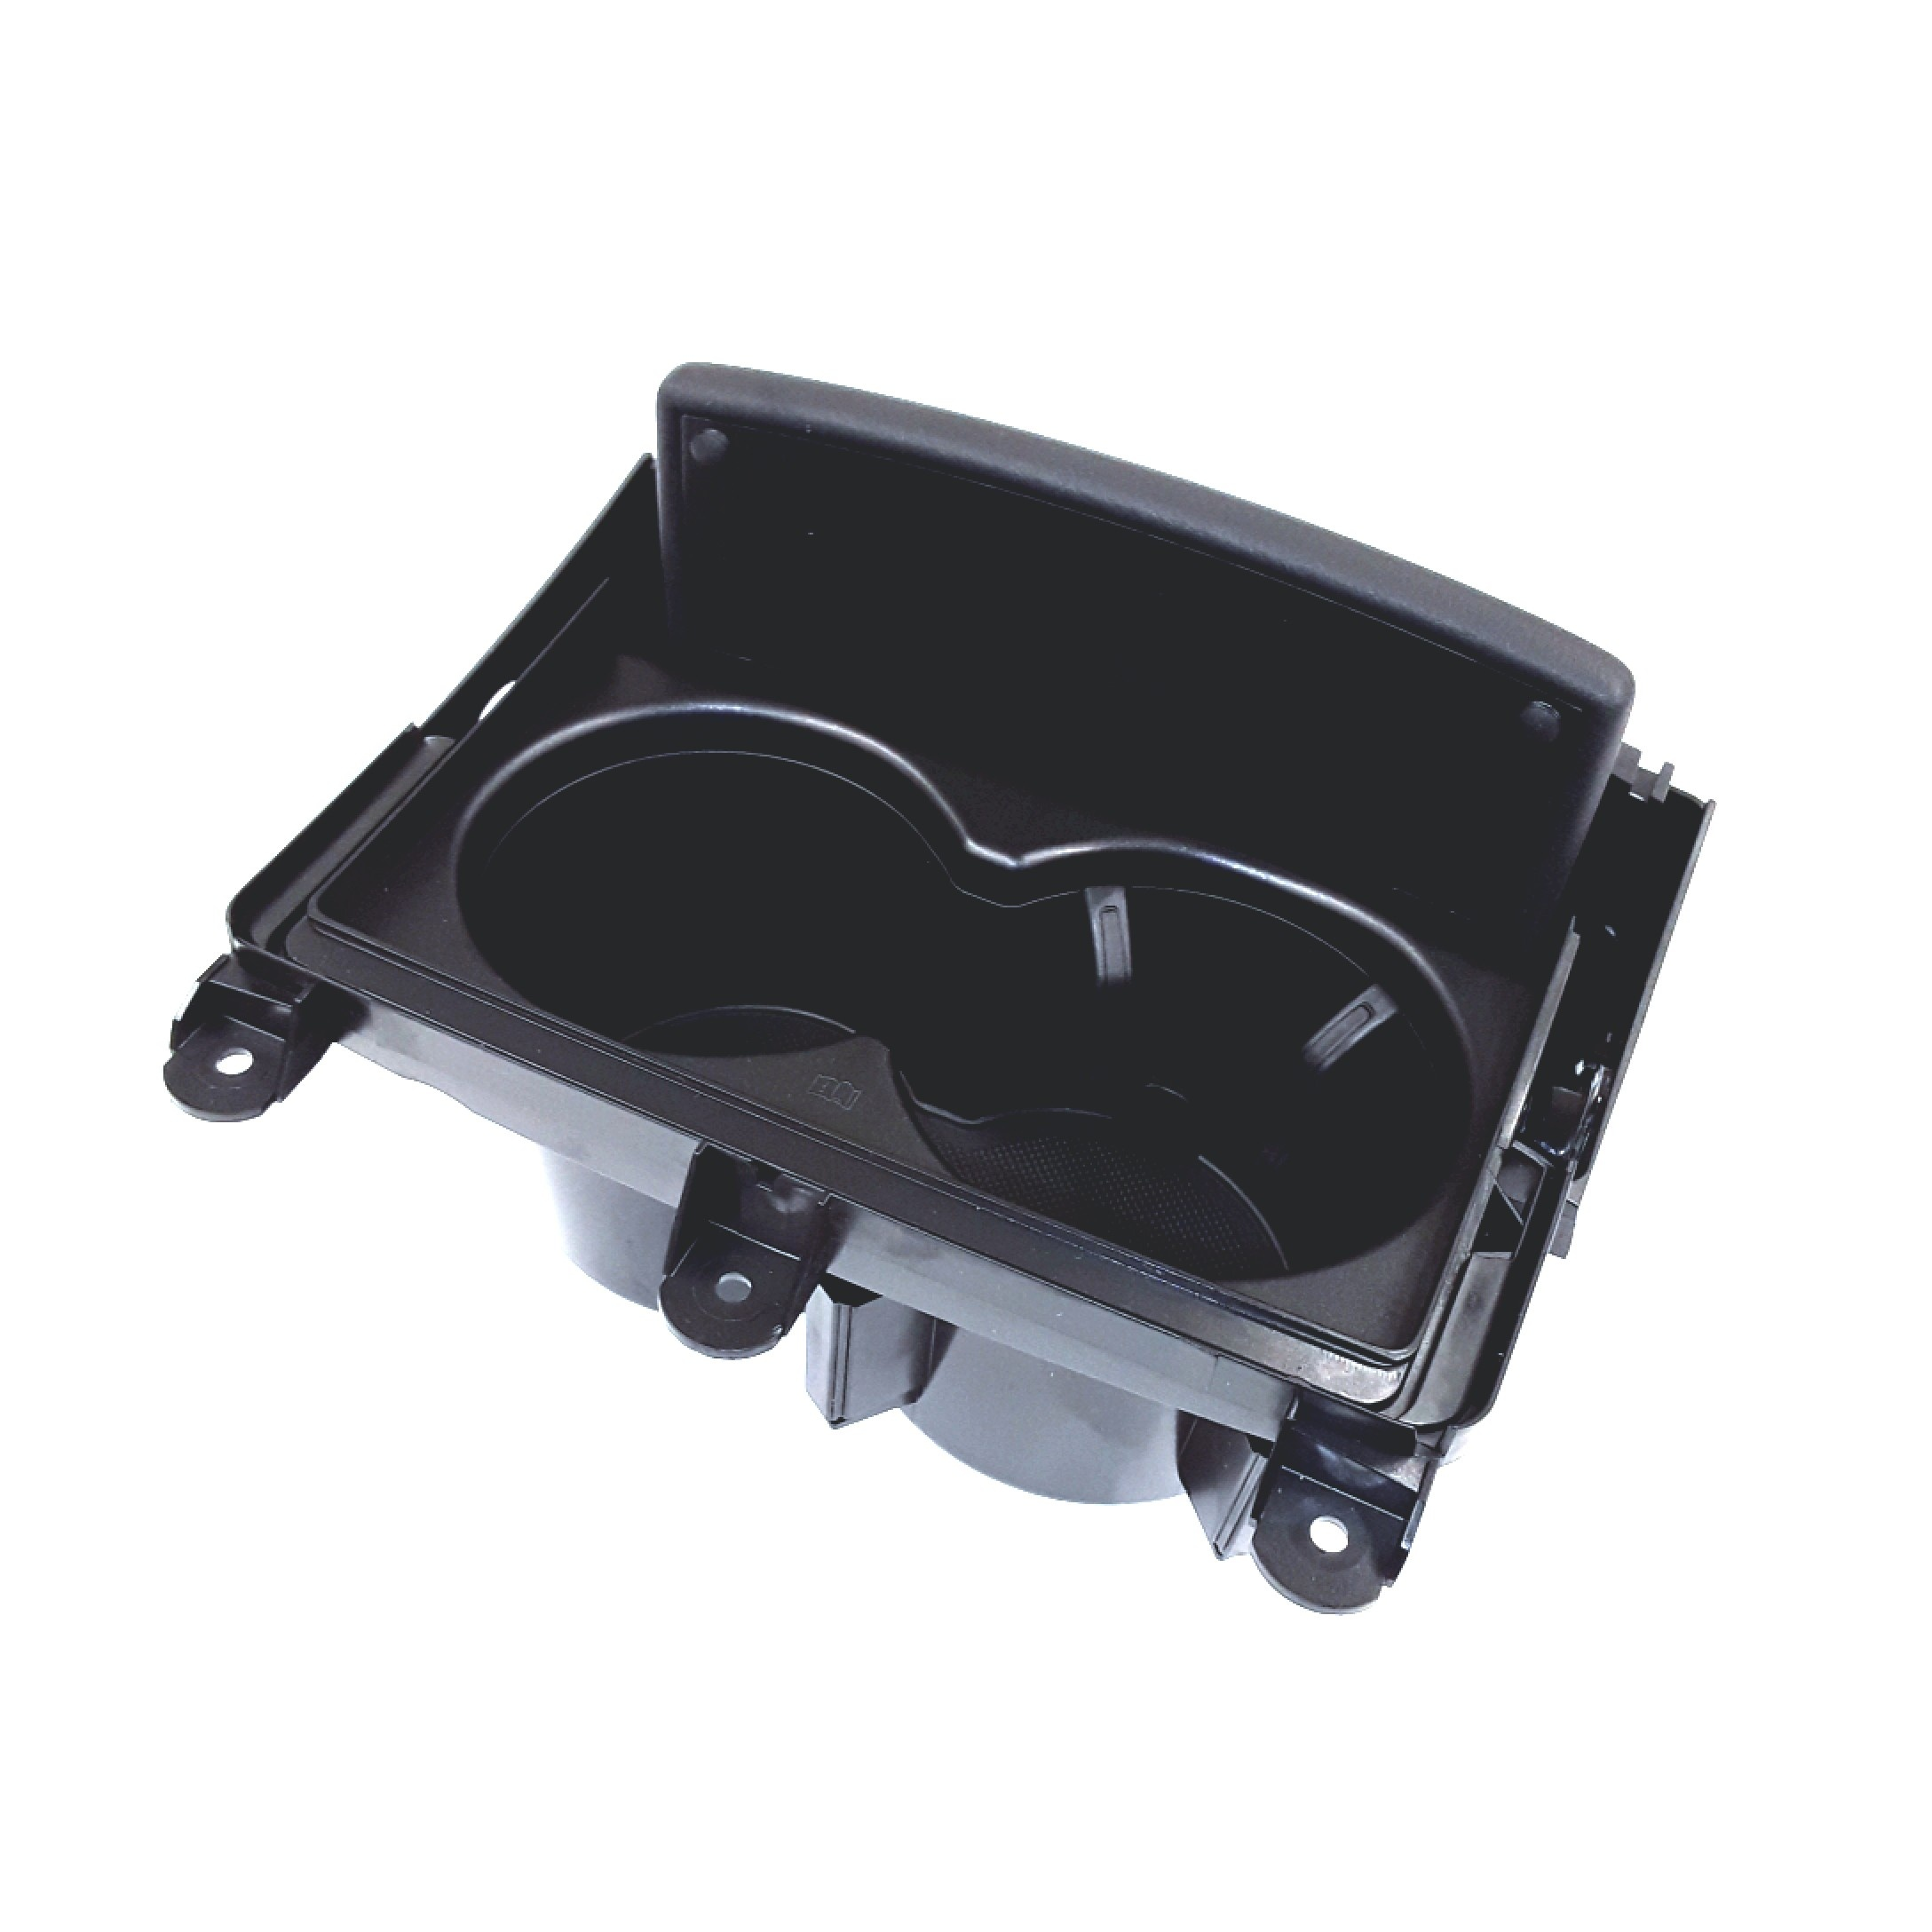 4g0862534c24a Audi Console Cup Holder Cup Holder Body